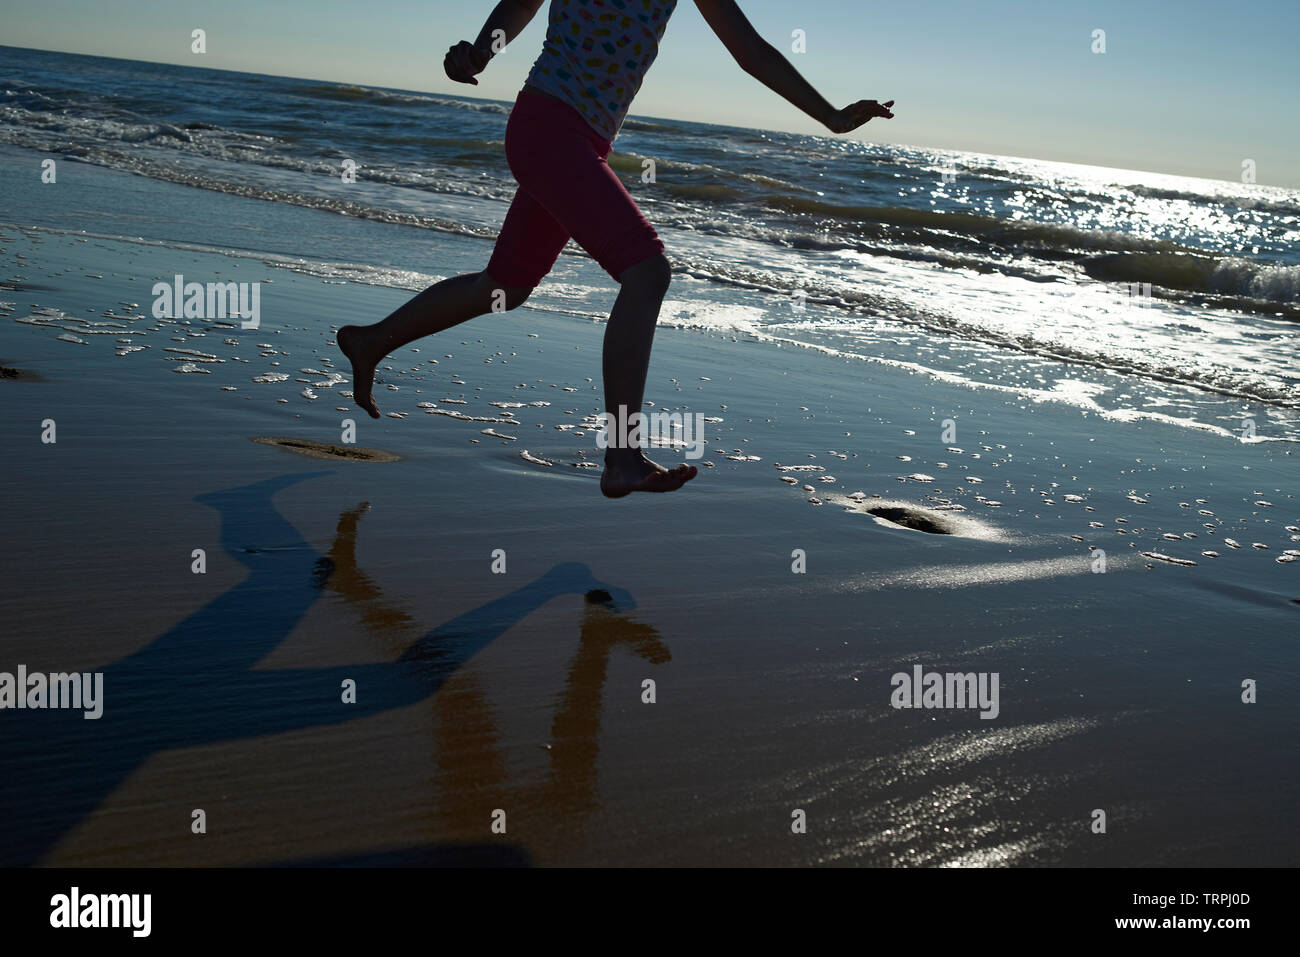 Asian girl in swimwear running and splashing in the ocean on a hot day in bright summer sunshine - Stock Image